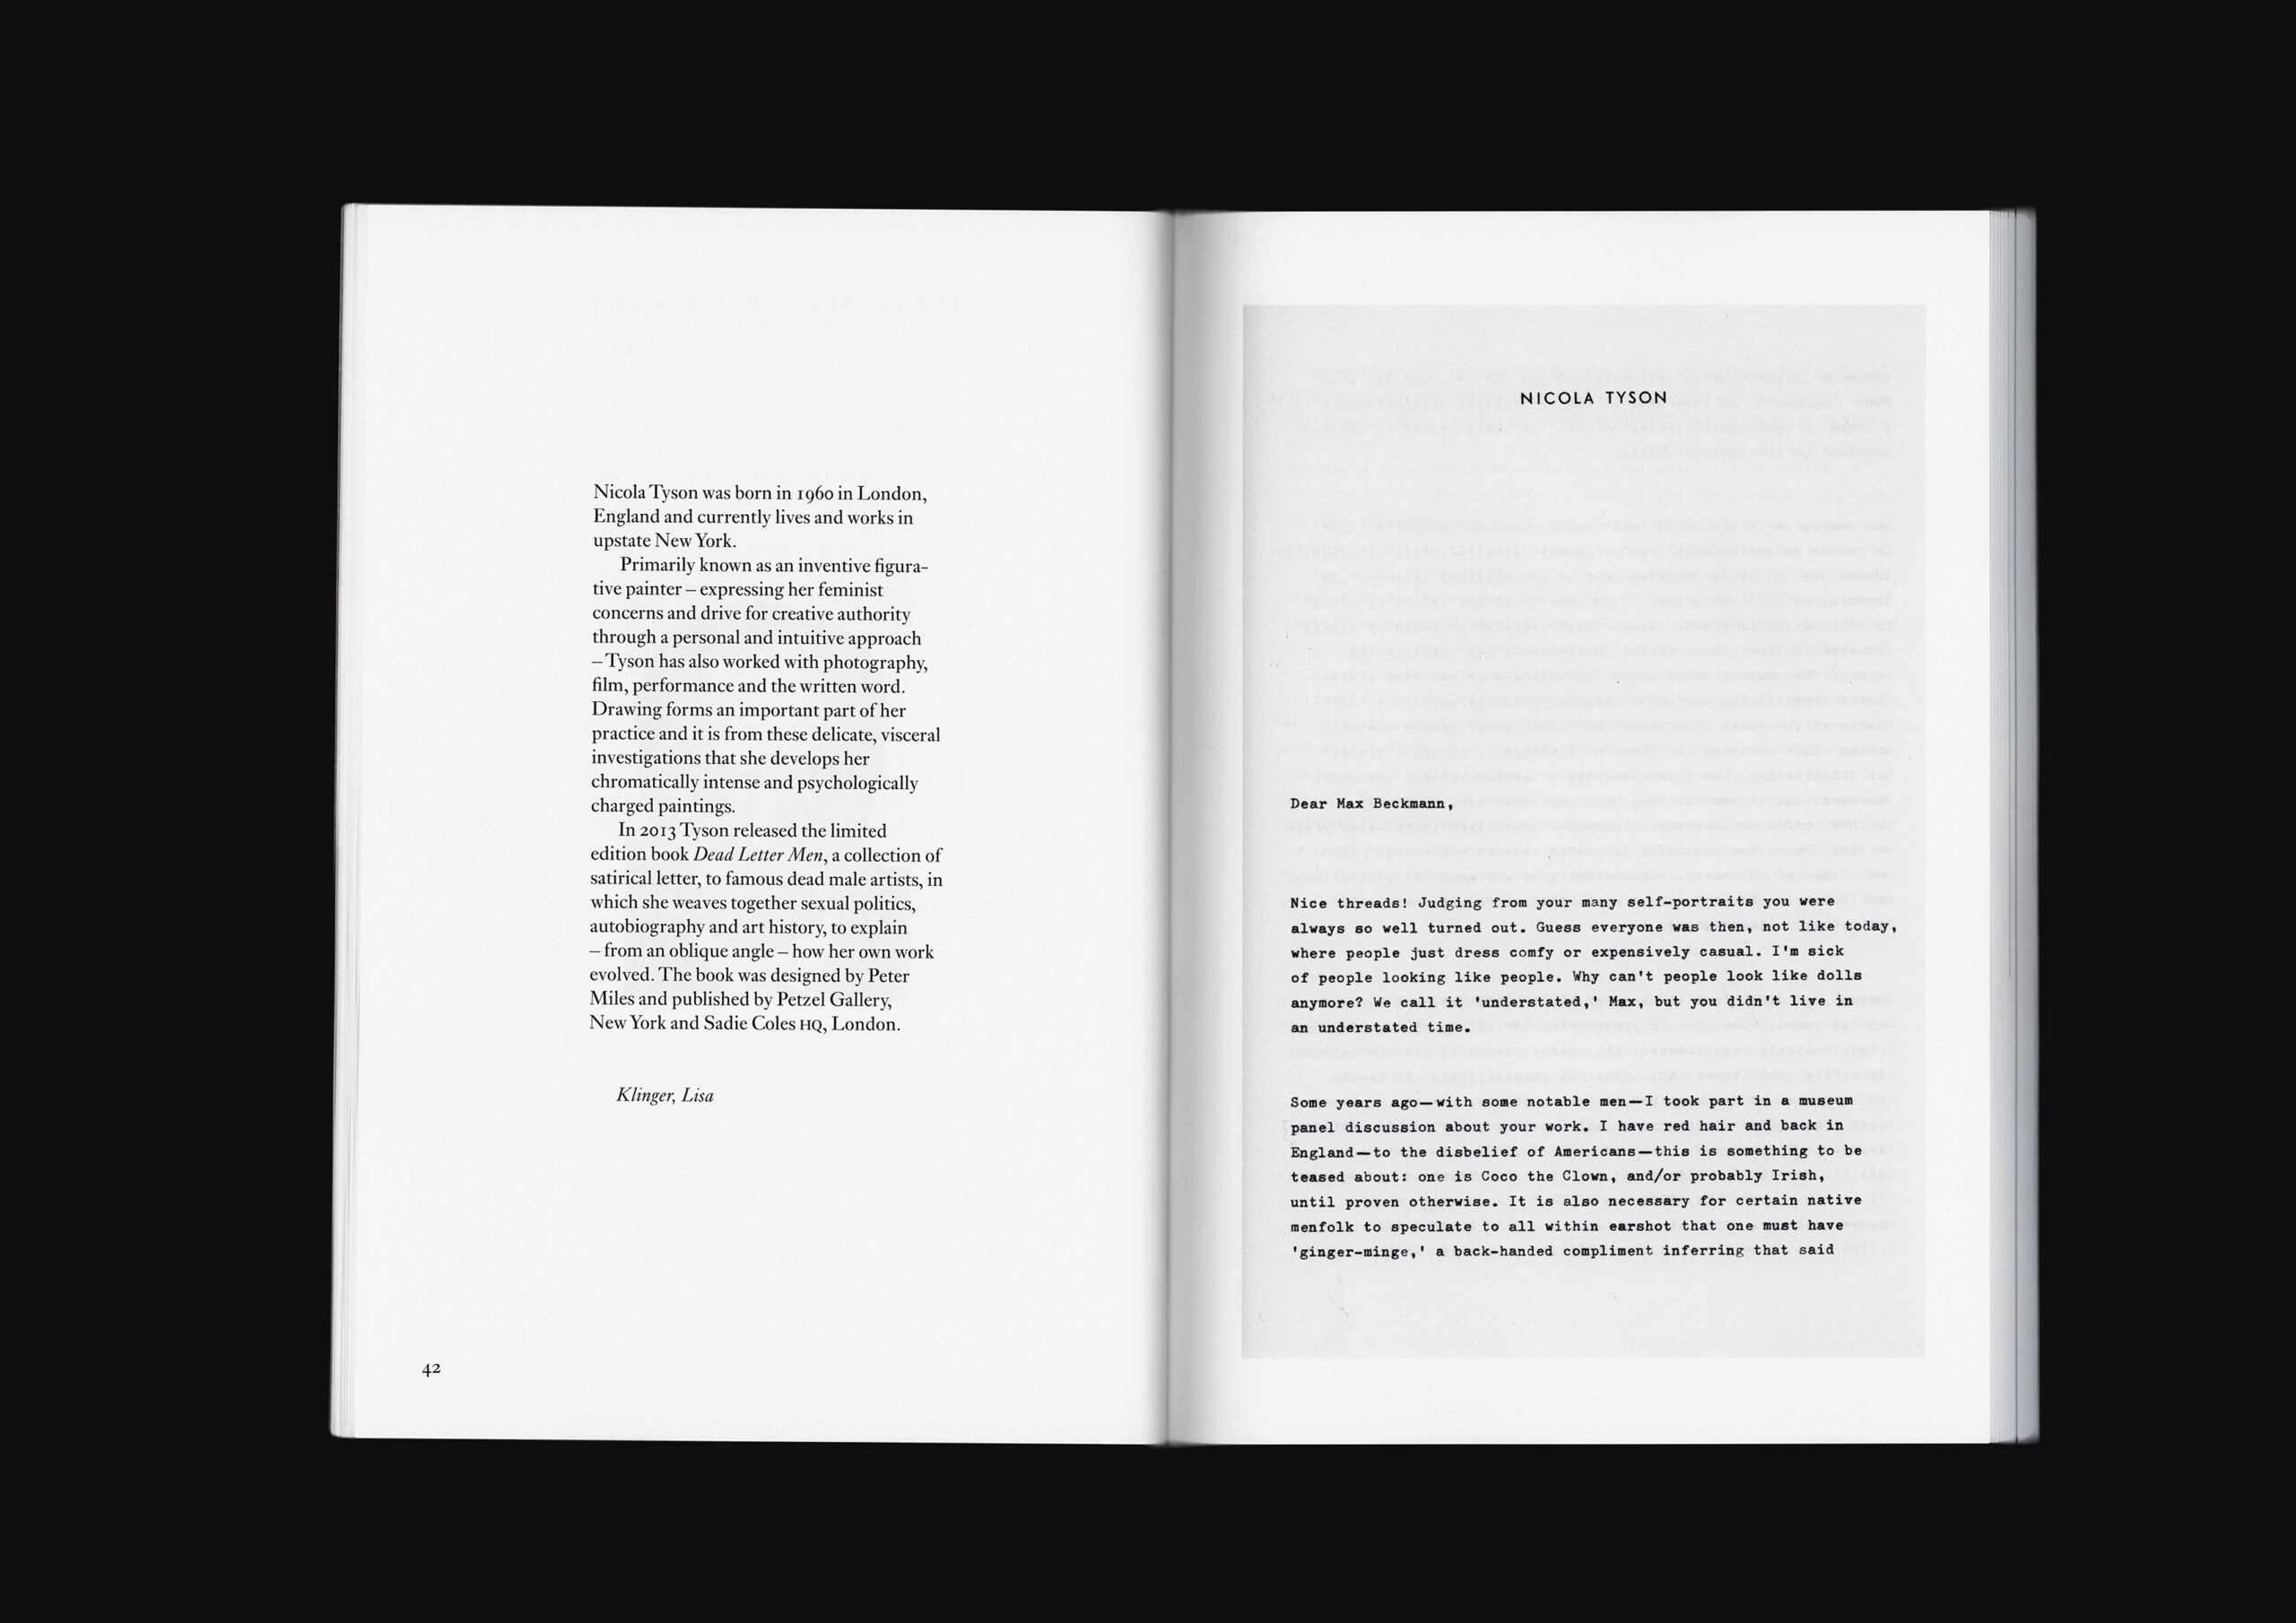 Klasse John Morgan Raum 106, Issue 3